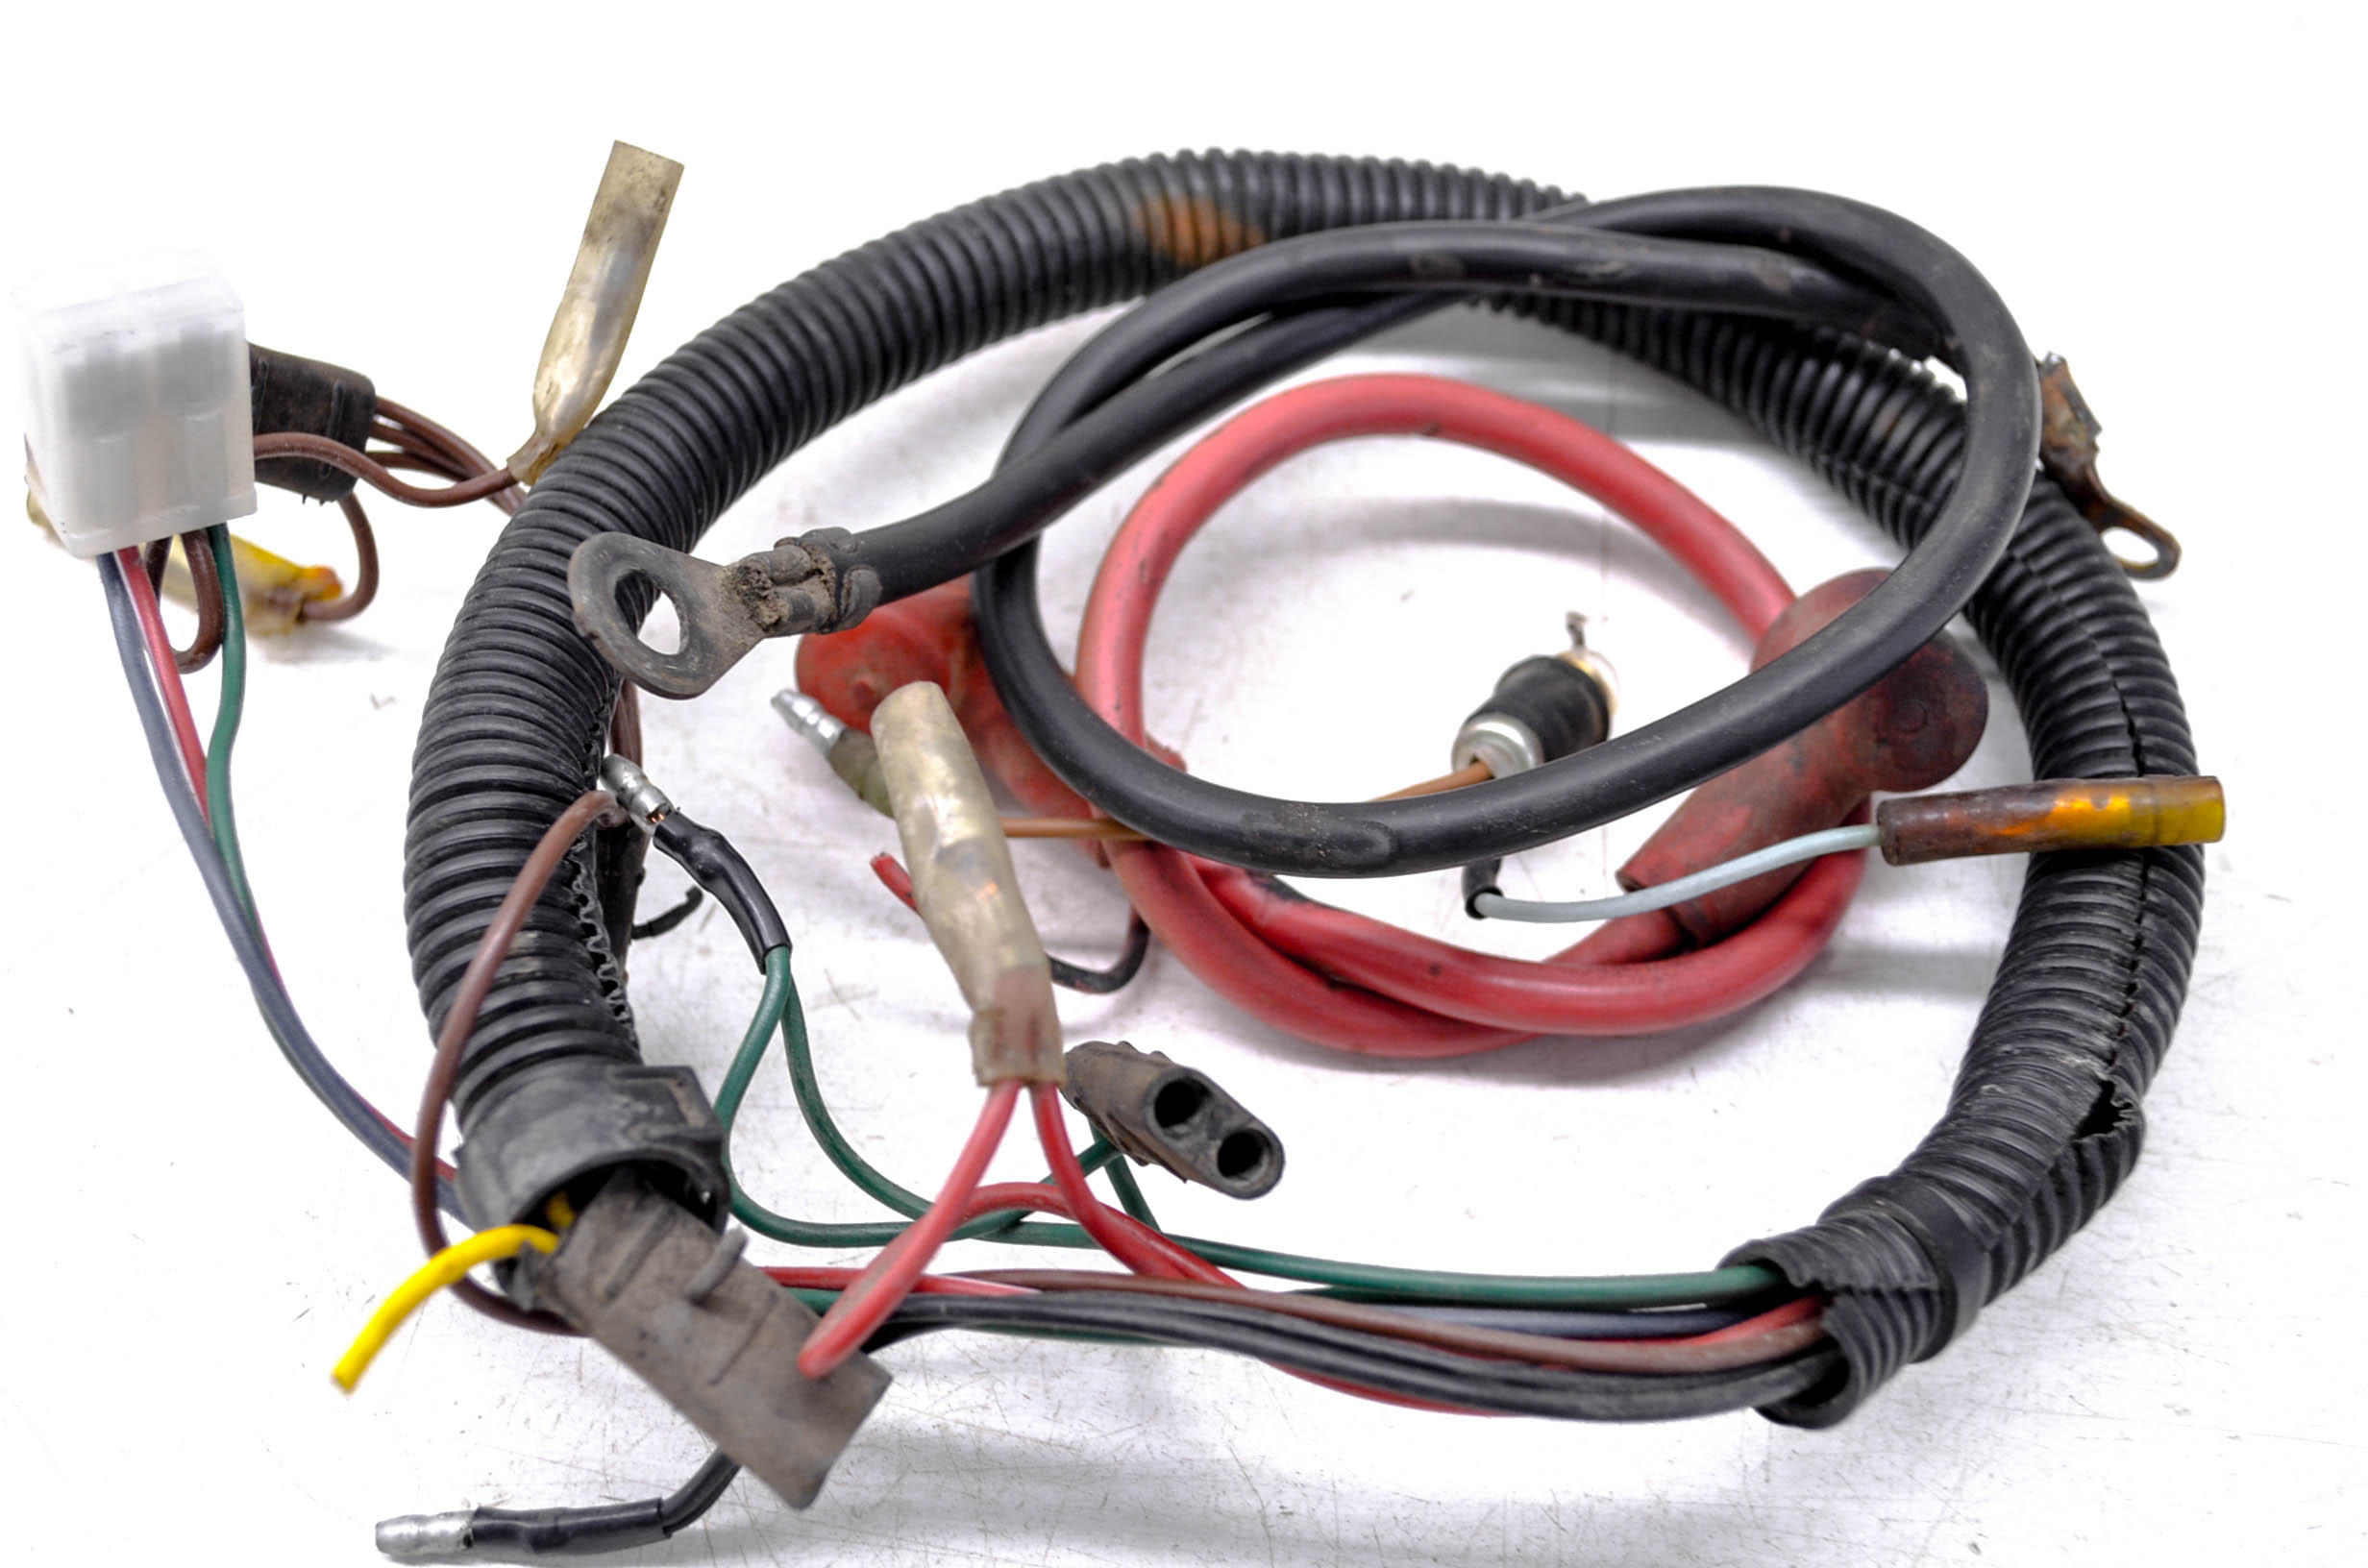 Wv 0036 Wiring Harness Diagram In Addition 2003 Polaris 330 Trail Boss Wiring Wiring Diagram